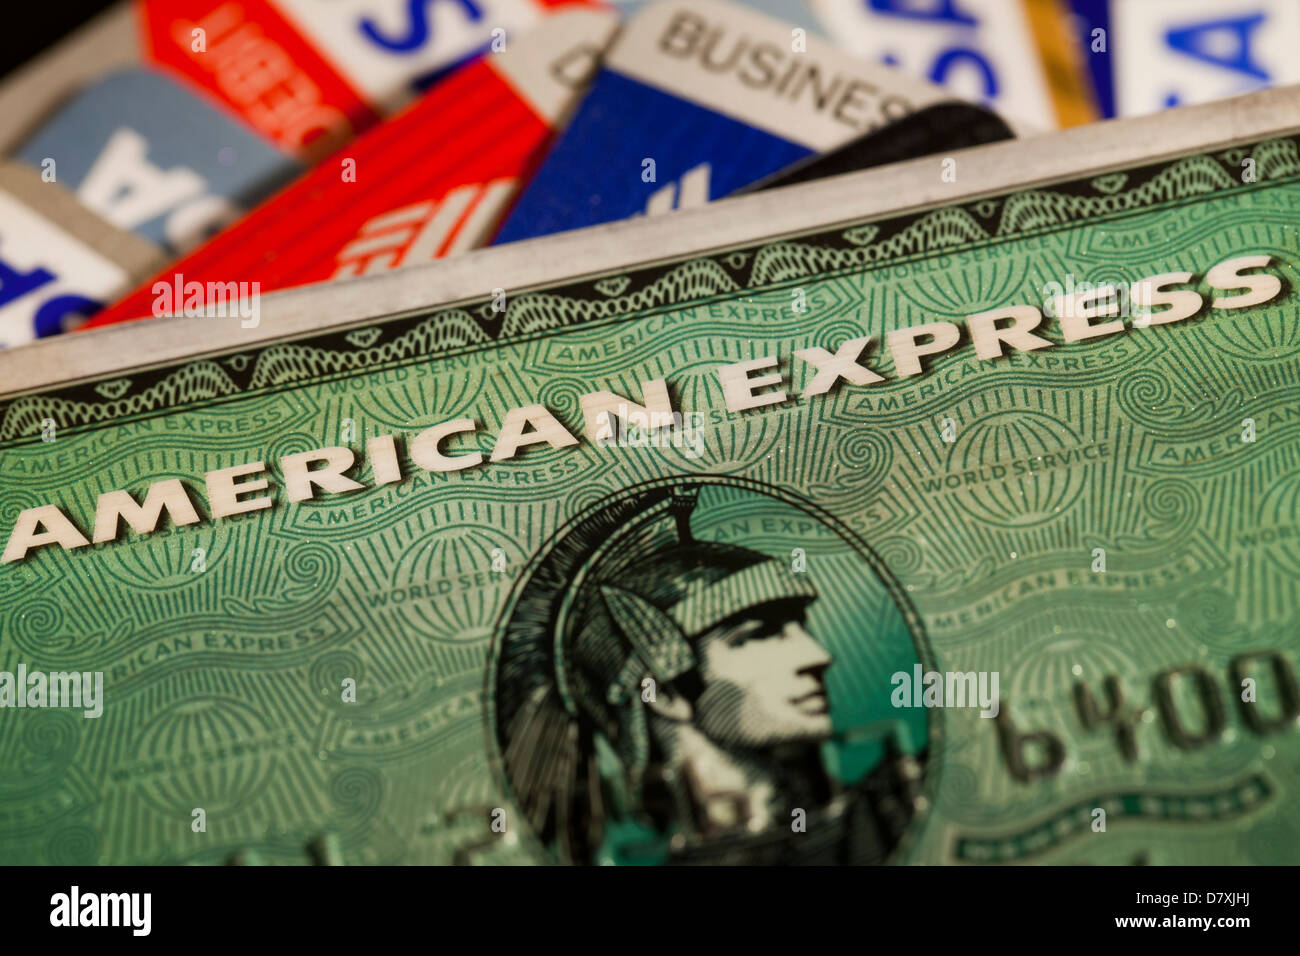 American Express credit card - Stock Image